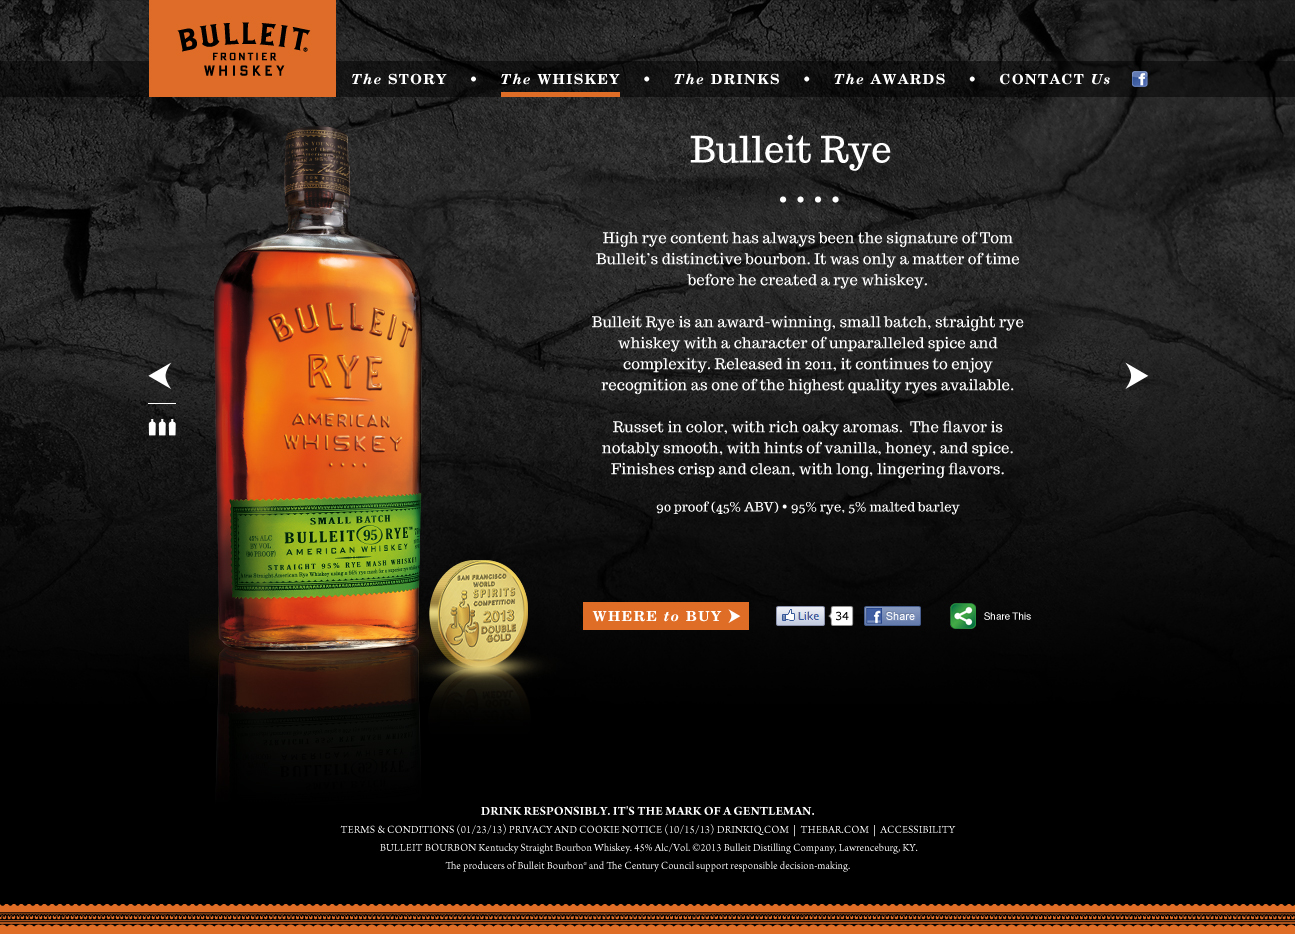 Bulleit-site_the-whiskey_product.jpg